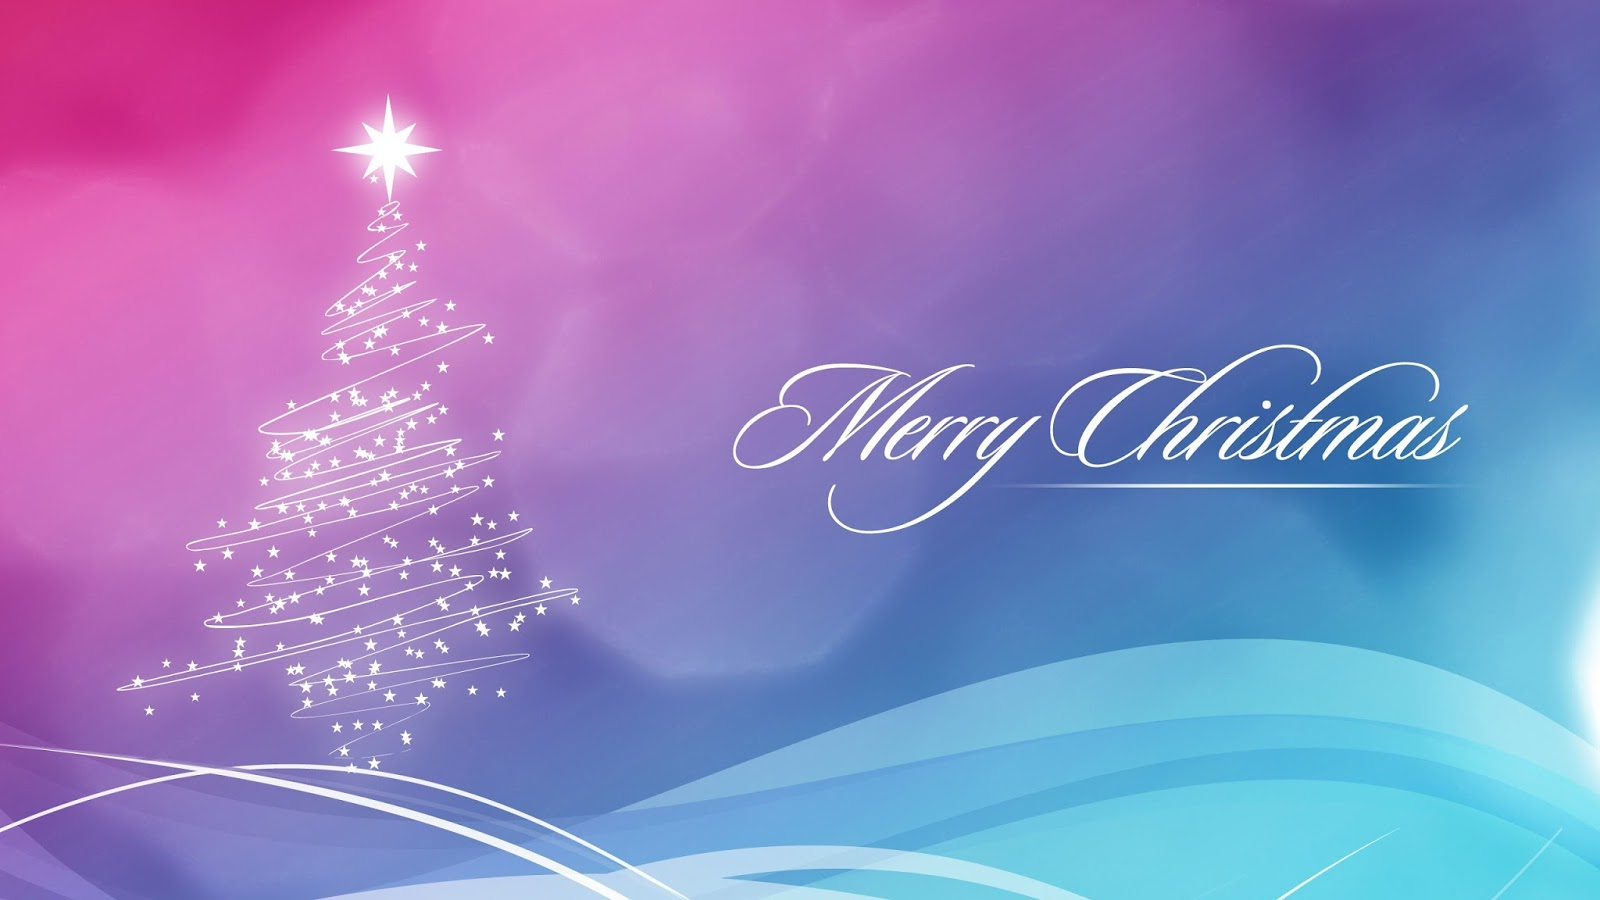 ... Wallpaper 2017 Which Can Share With Your Family Member, Friends,  Colleague And Dearest And Loved Ones.Below Are Some Unique Happy Merry  Christmas 2017 ...